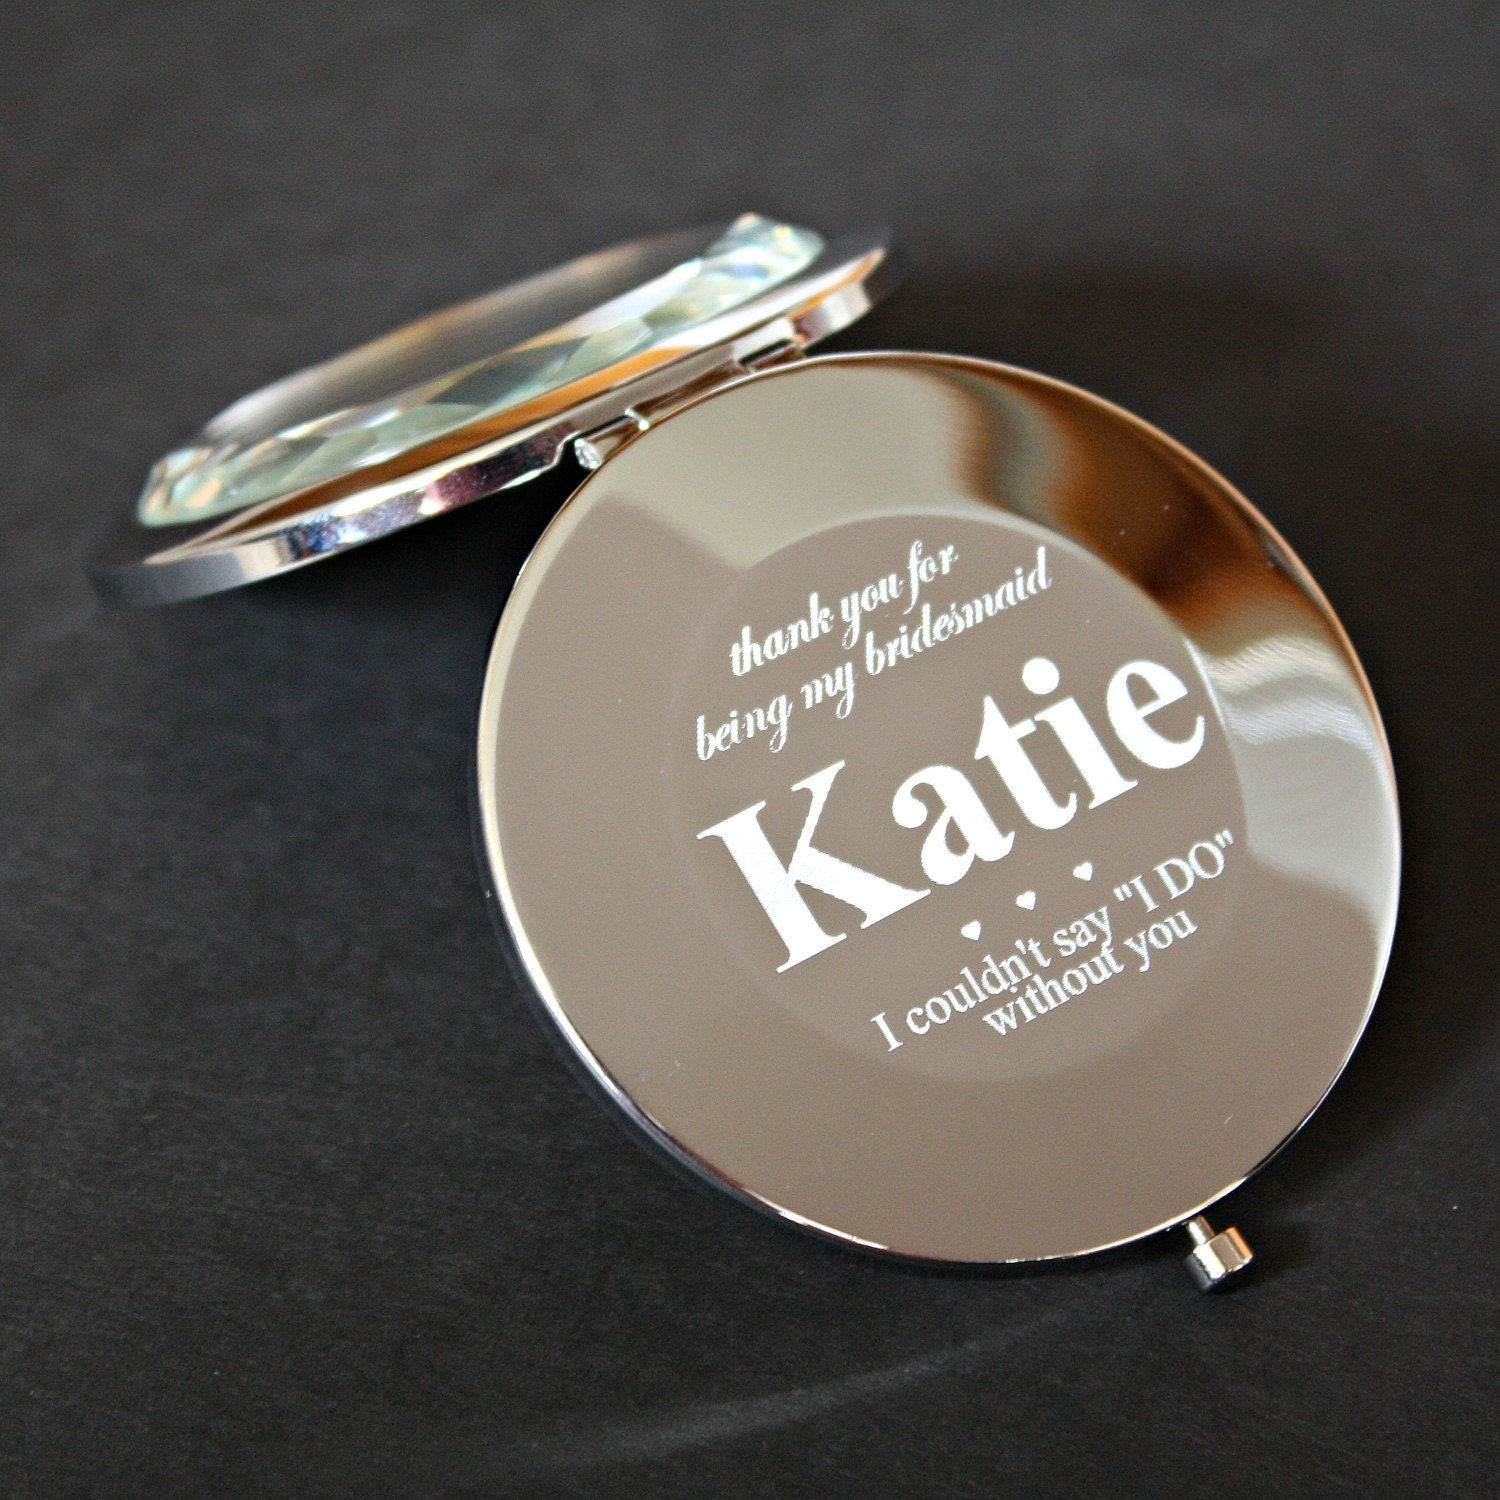 bridesmaid gift personalized compact mirror engraved with. Black Bedroom Furniture Sets. Home Design Ideas